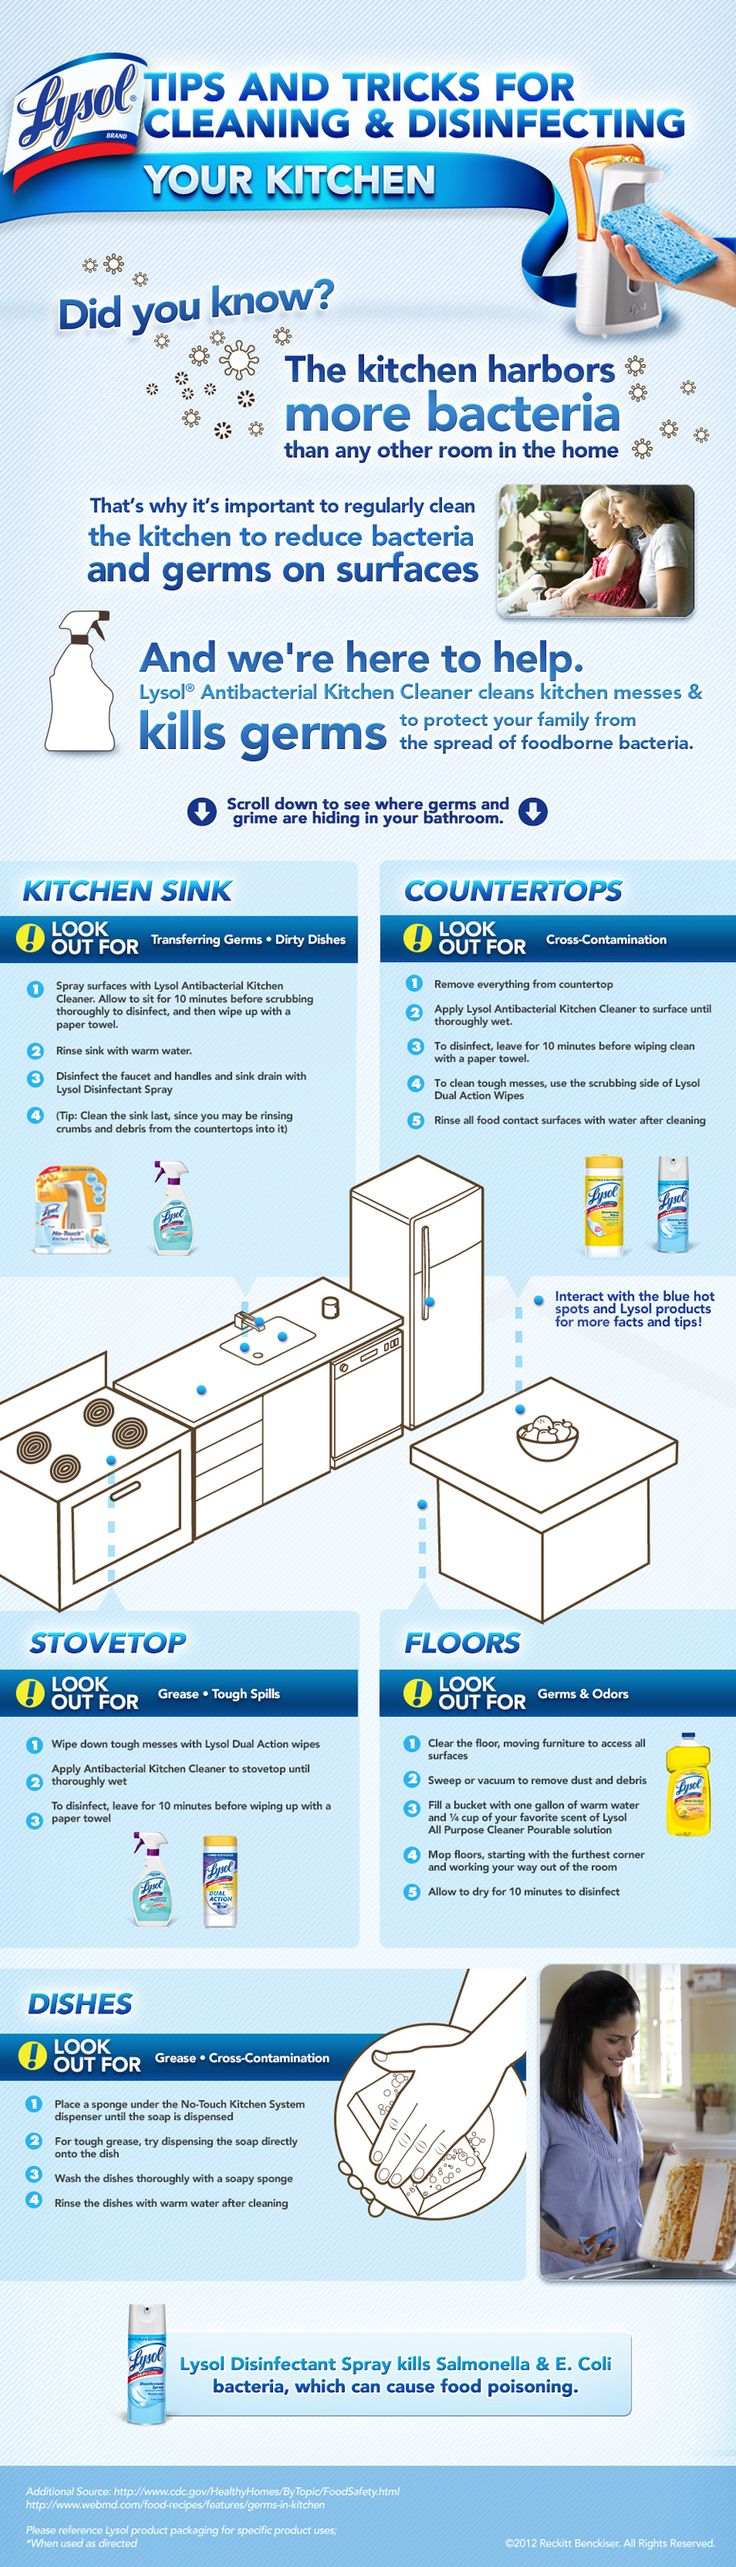 Best Spring Cleaning Tips 15 best spring cleaning images on pinterest | spring cleaning